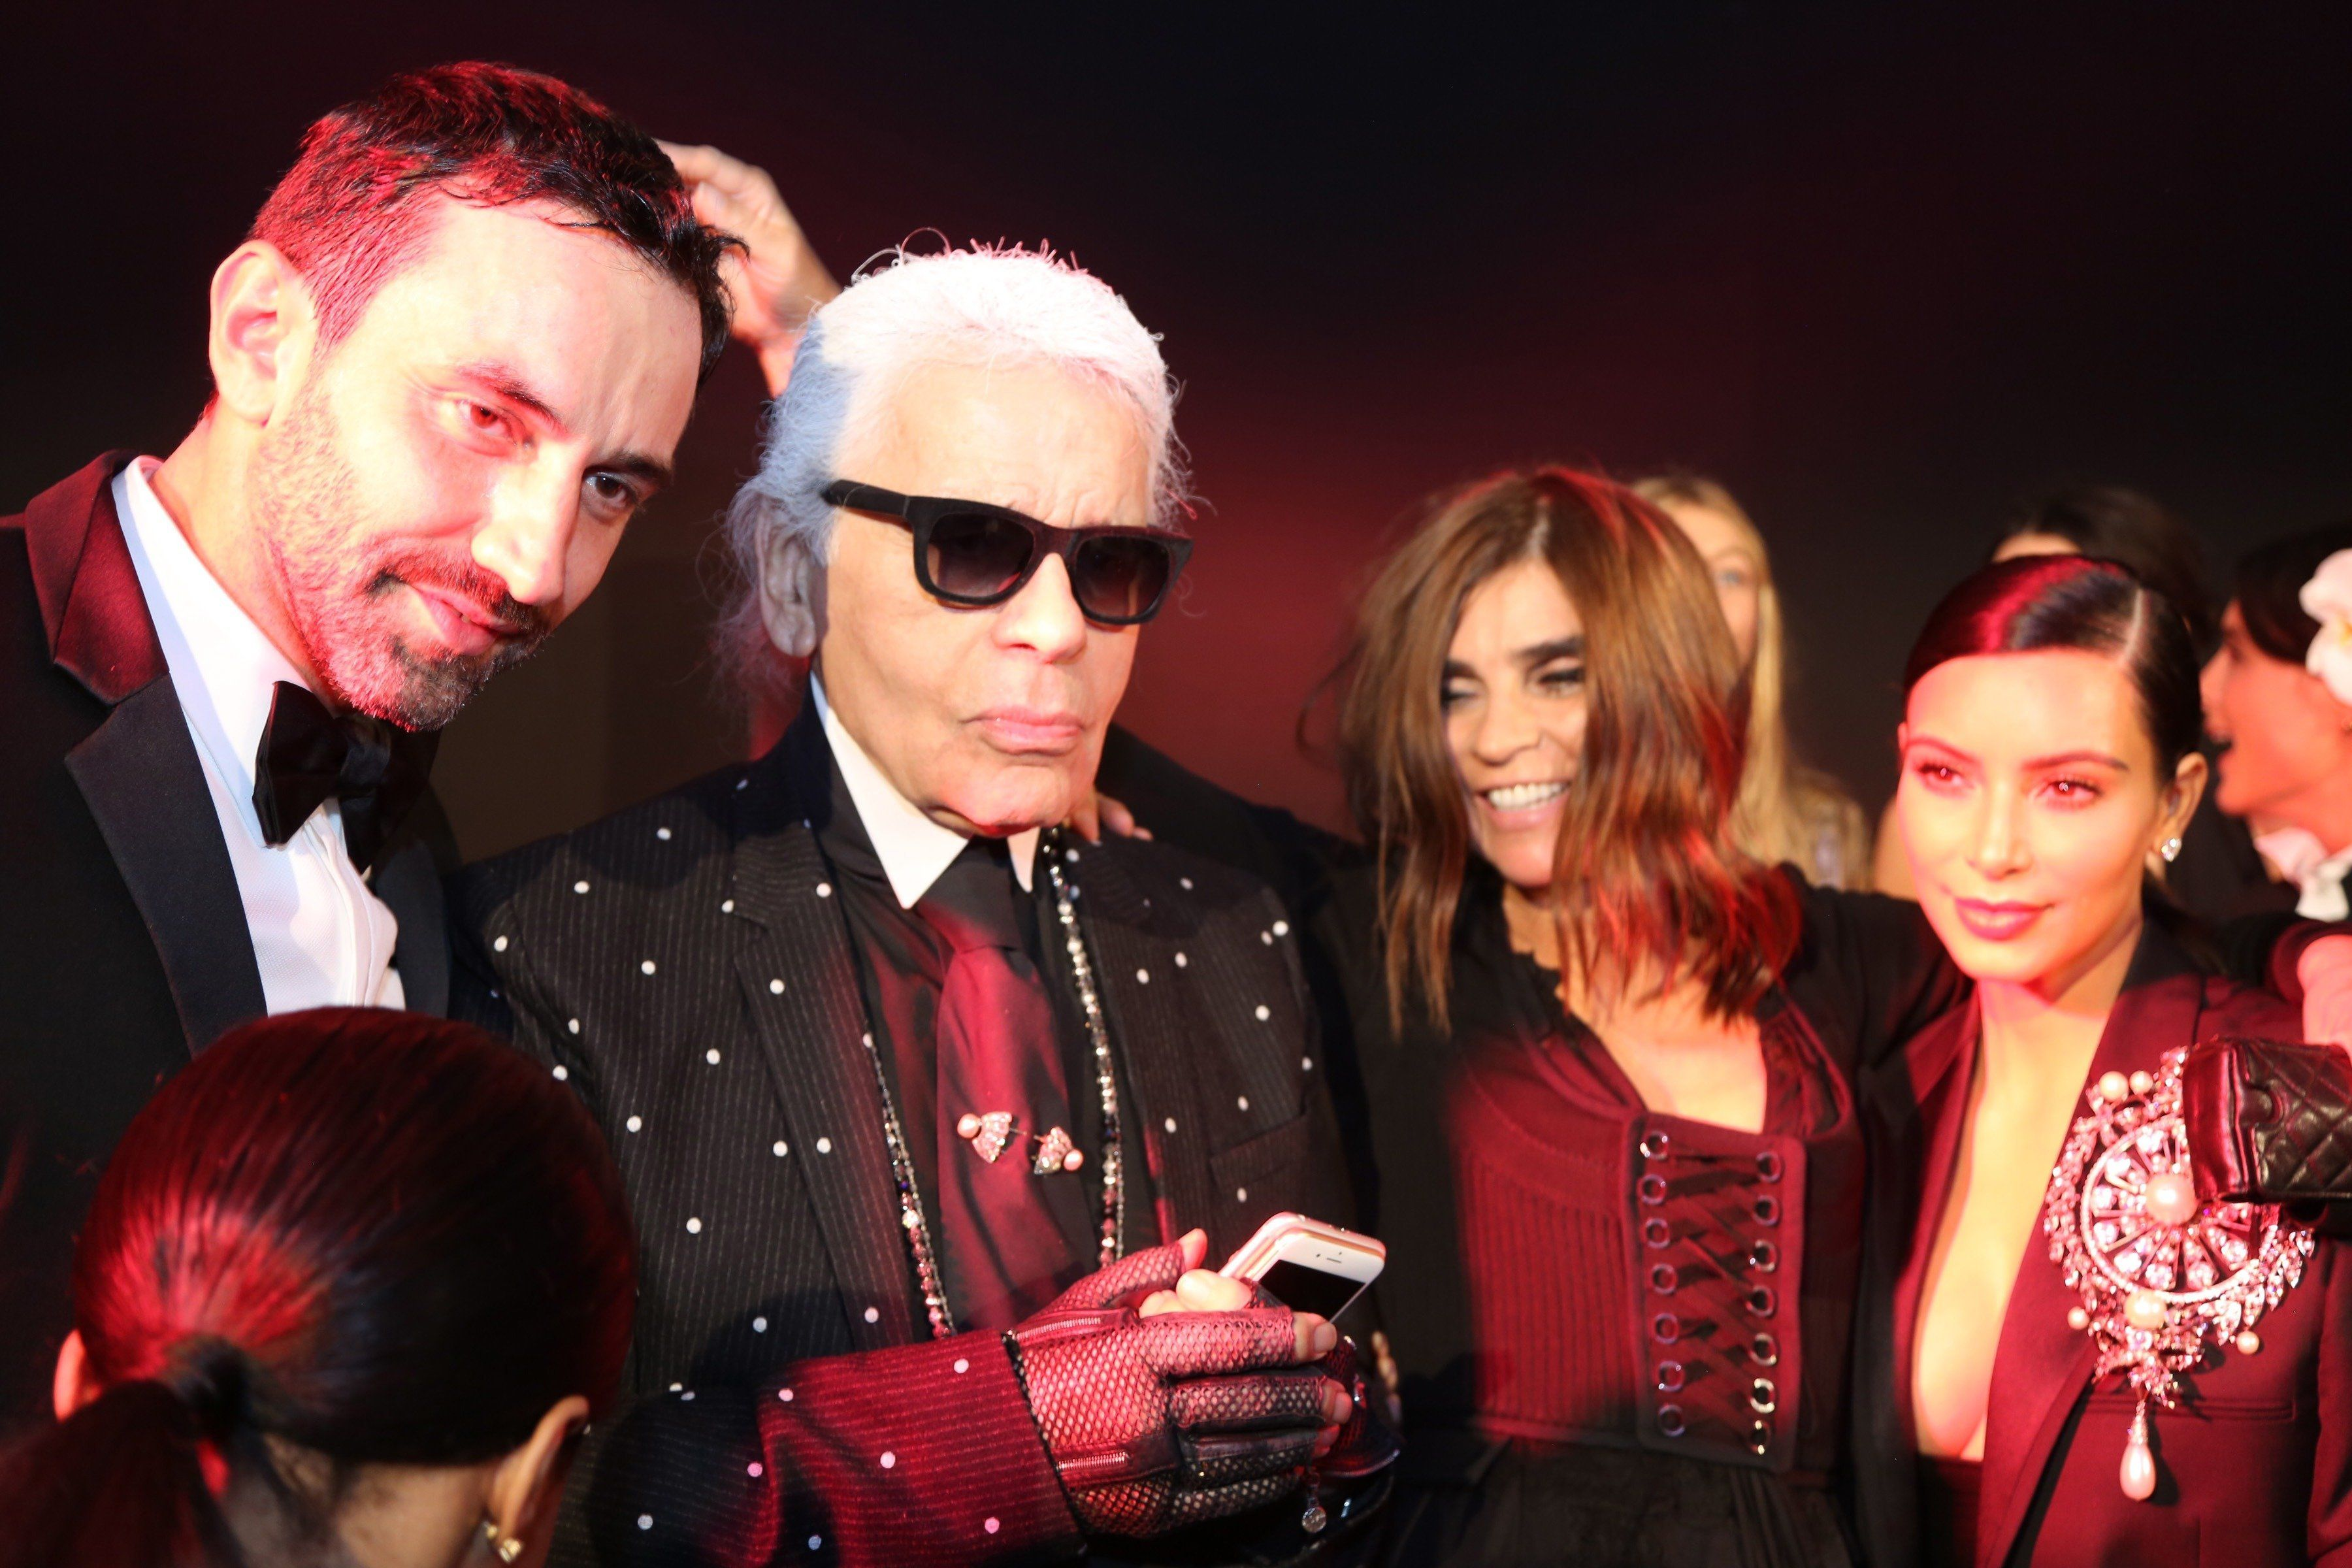 PARIS, FRANCE - SEPTEMBER 30: Riccardo Tisci, Karl Lagerfeld, Carine Roitfeld and Kim Kardashian attend the CR Fashion Book Issue No.5 Launch Party hosted by Carine Roitfeld and Stephen Gan at The Peninsula Paris on September 30, 2014 in Paris, France.  (Photo by Antonio de Moraes Barros Filho/WireImage)